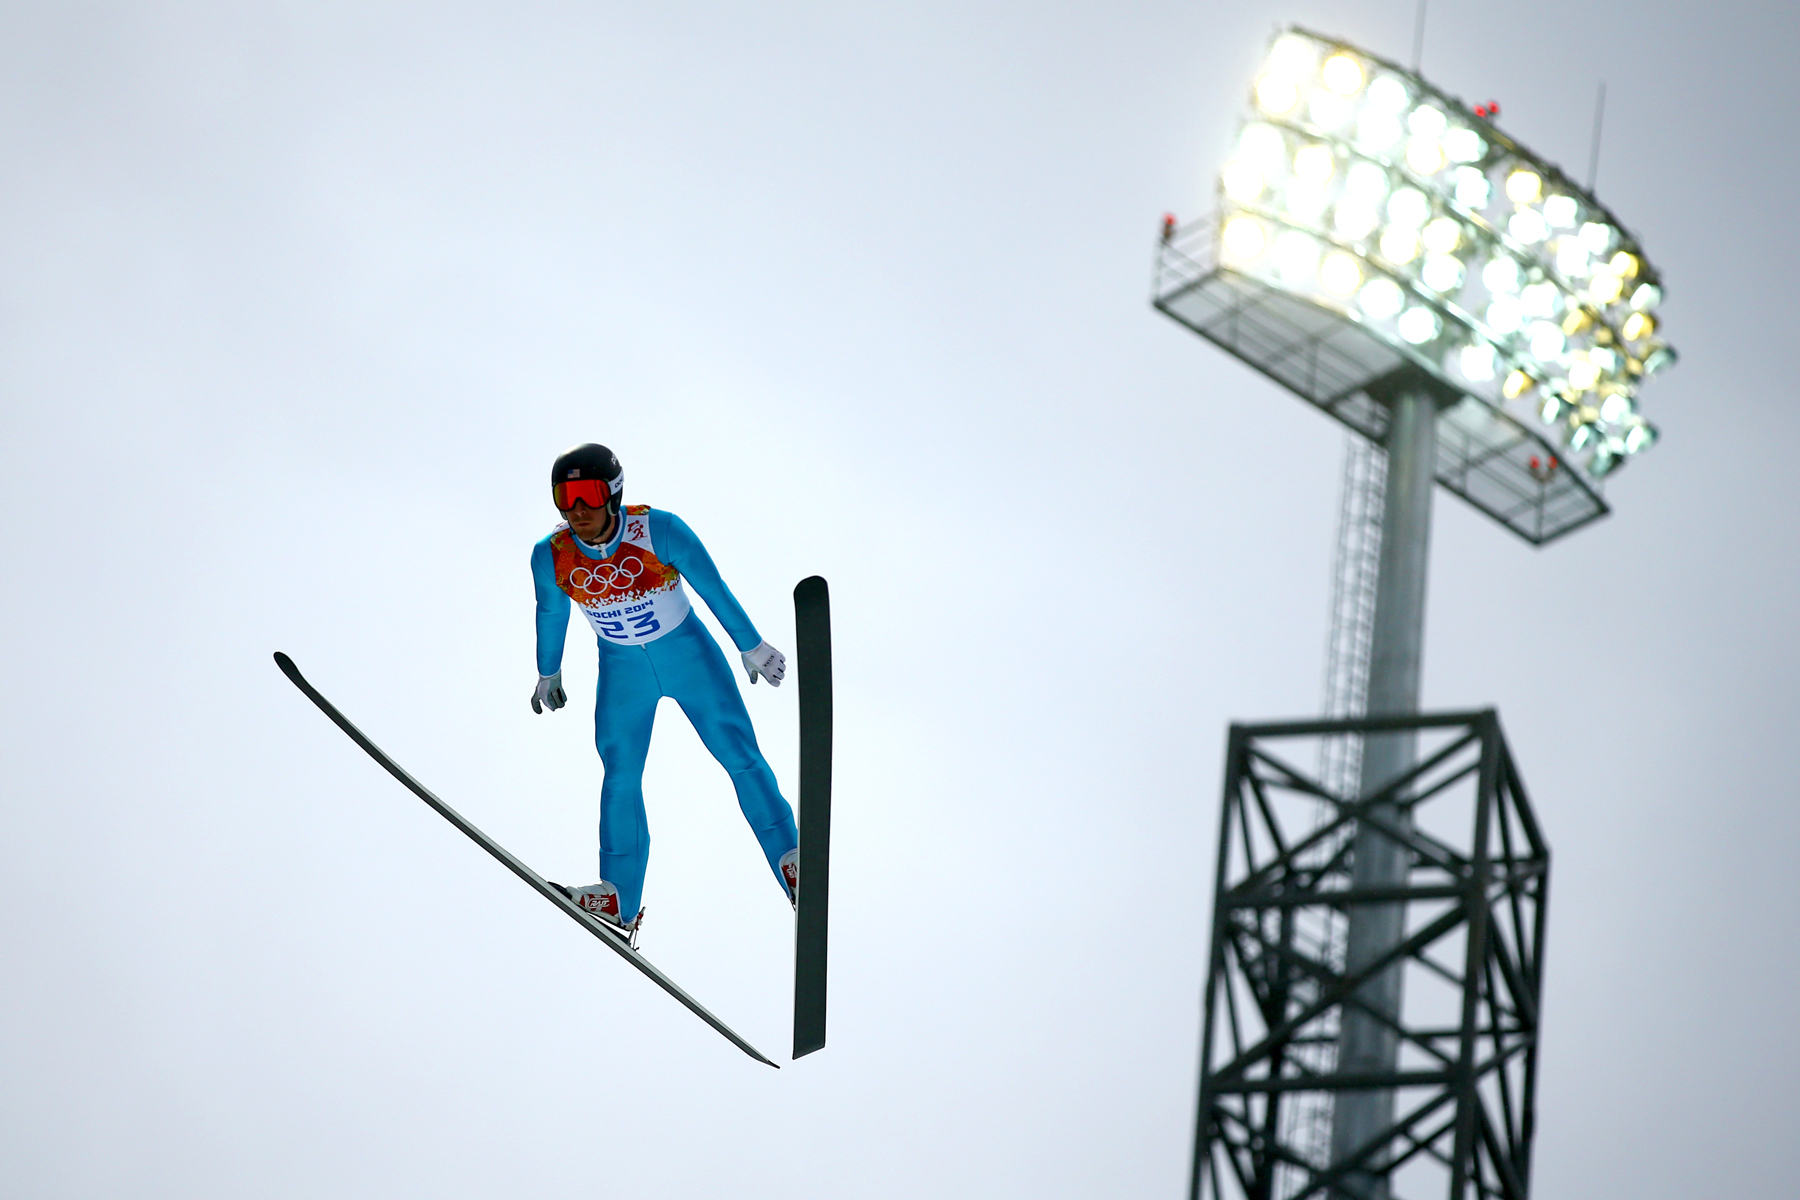 Olympic Winter Games Nordic Combined Criteria